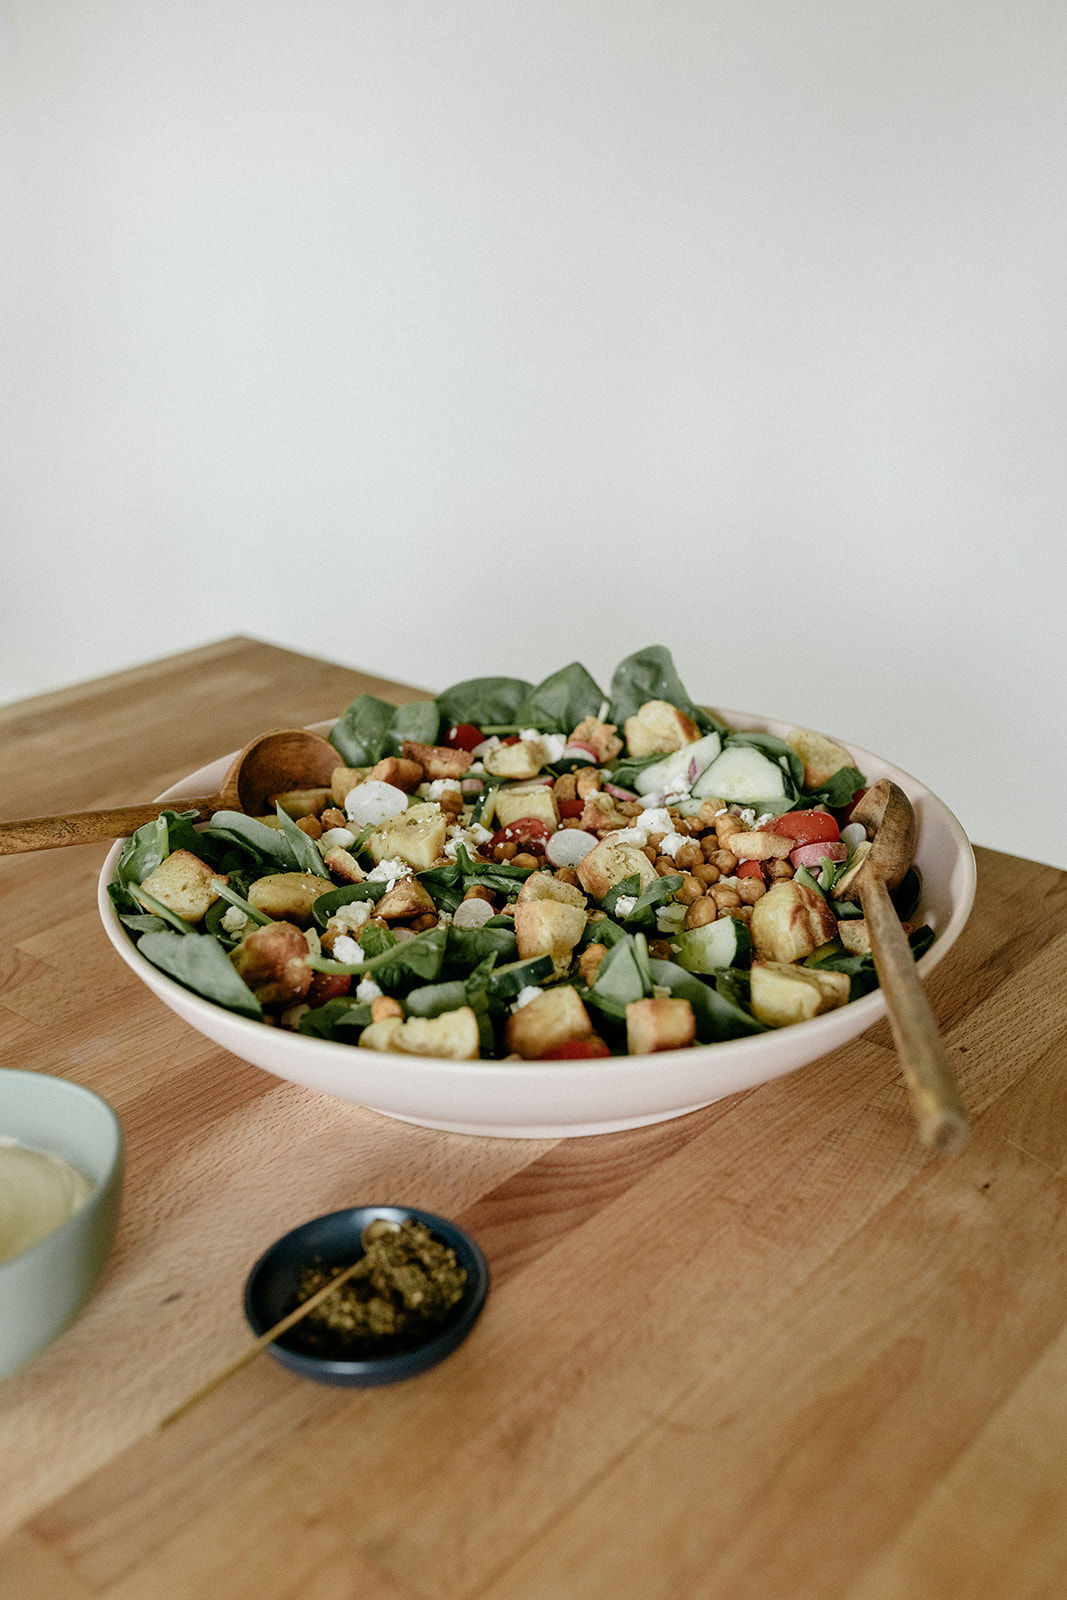 7-19-19-molly-yeh-homemade-salad-kits-4.jpg